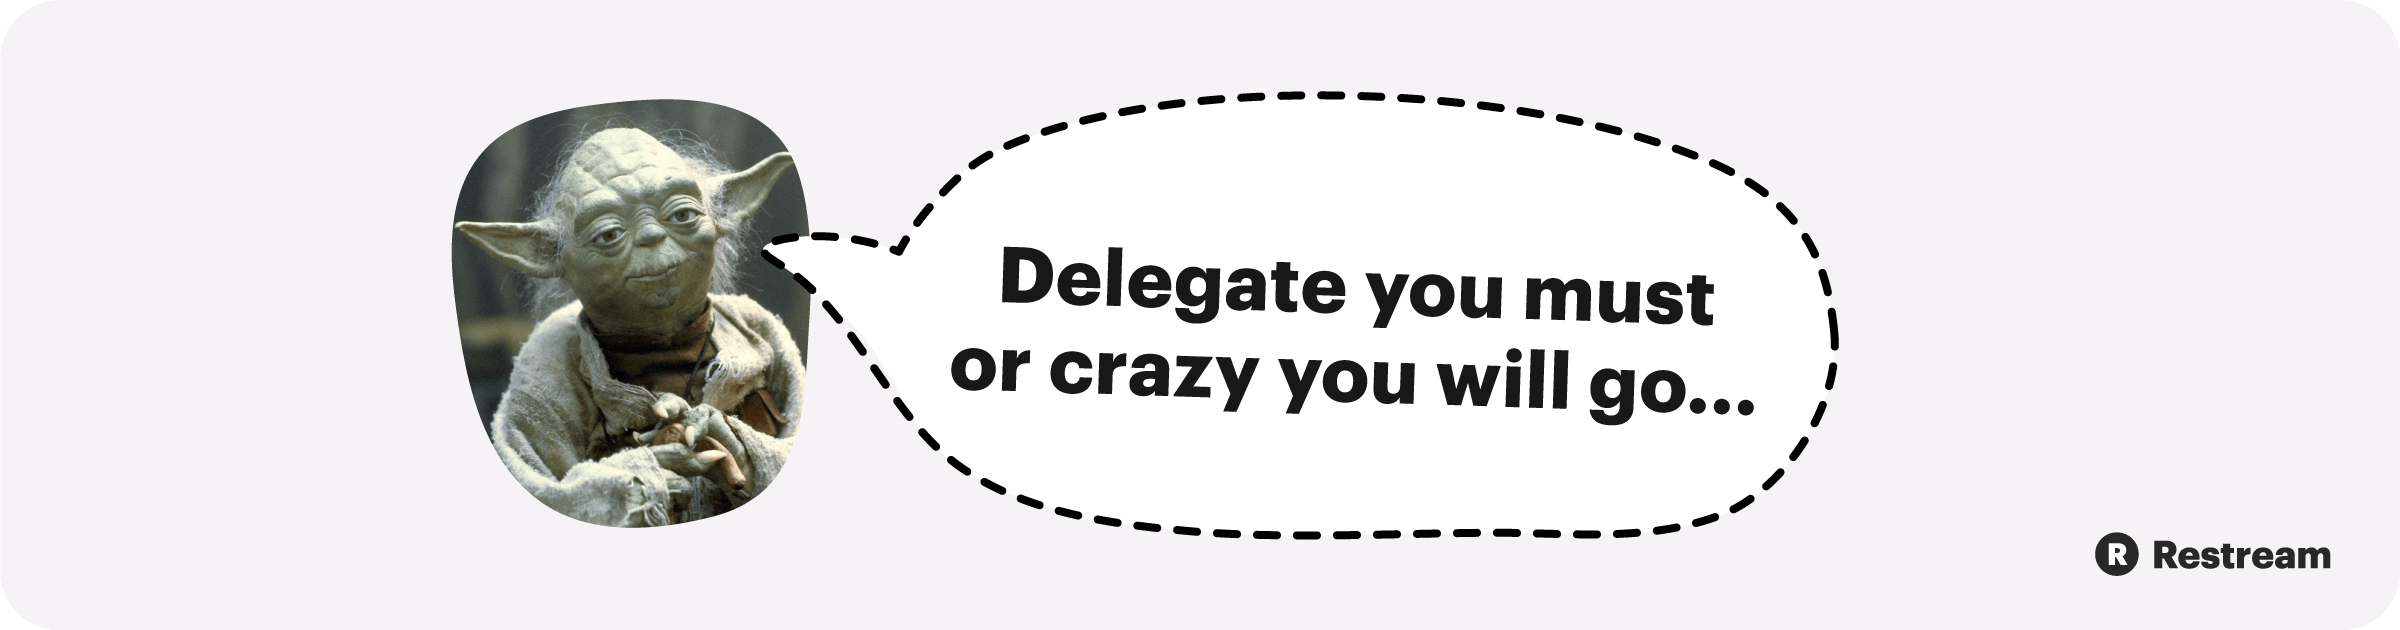 Delegate you must or crazy you will go!